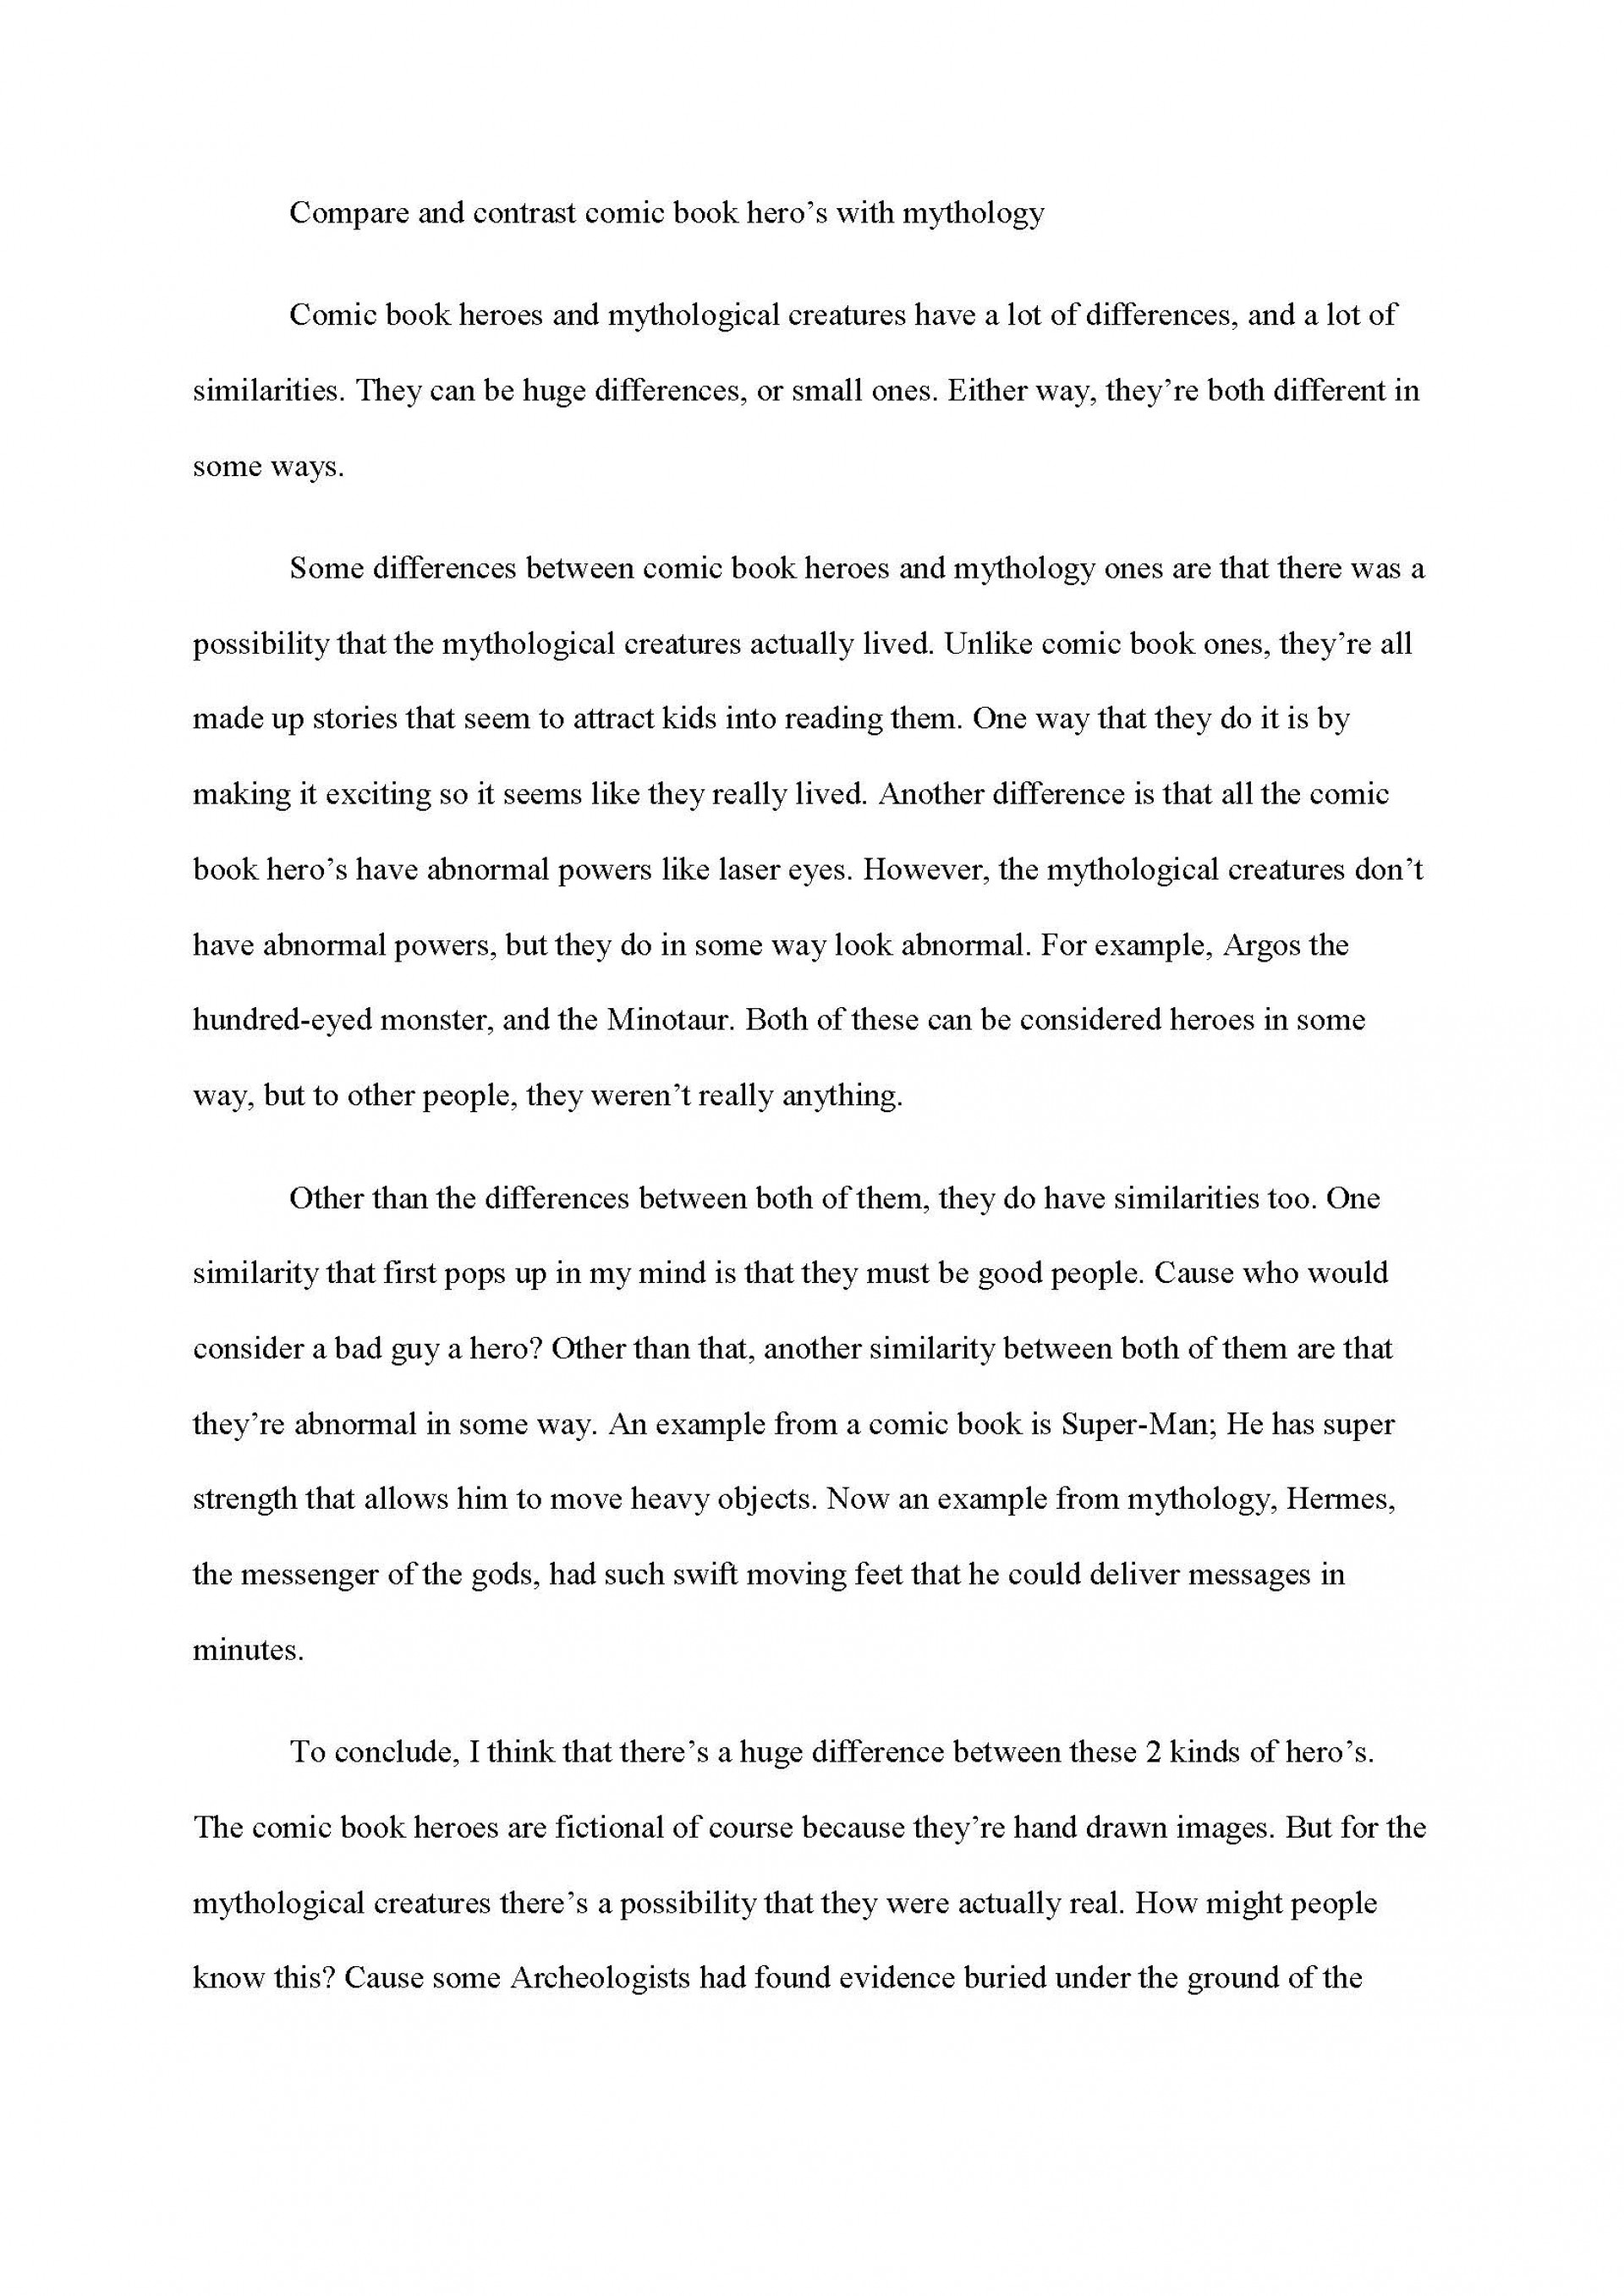 001 Compare And Contrast Essay Example Formidable A Apush Thesis Topics 2017 1920